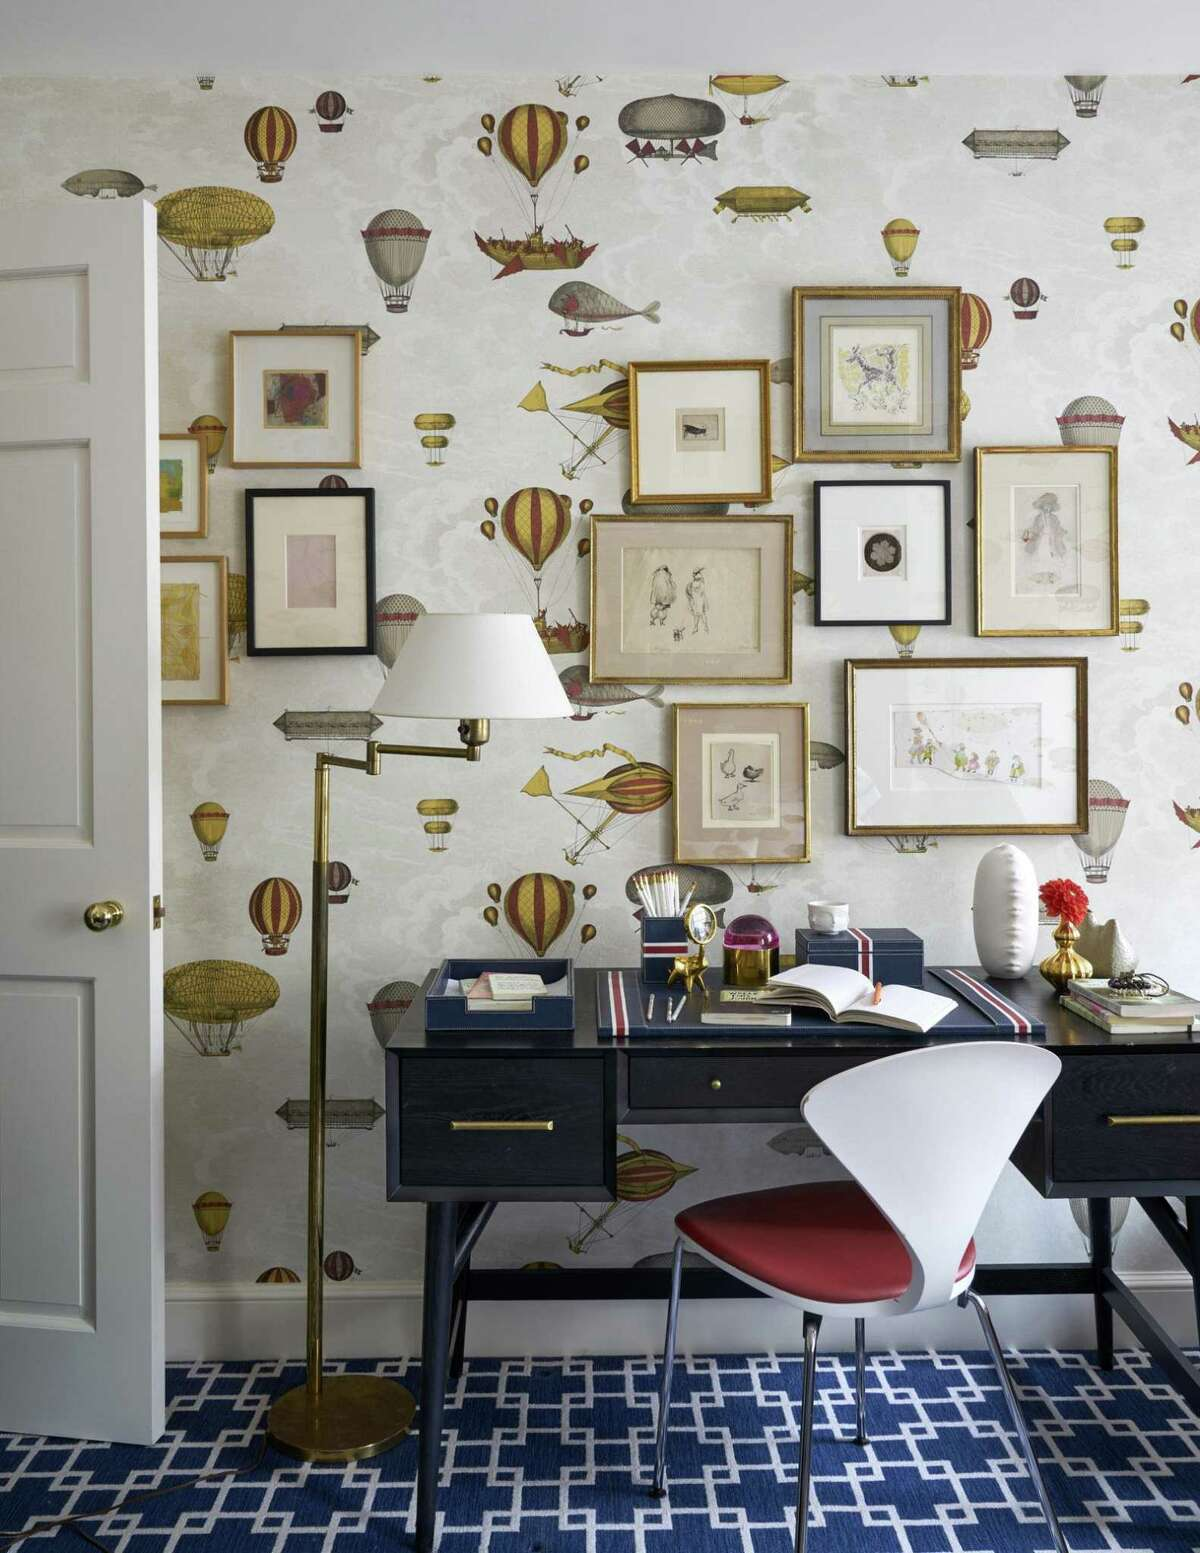 A child's room with substantial furniture and charming wallpaper was designed by Katie Lydon.